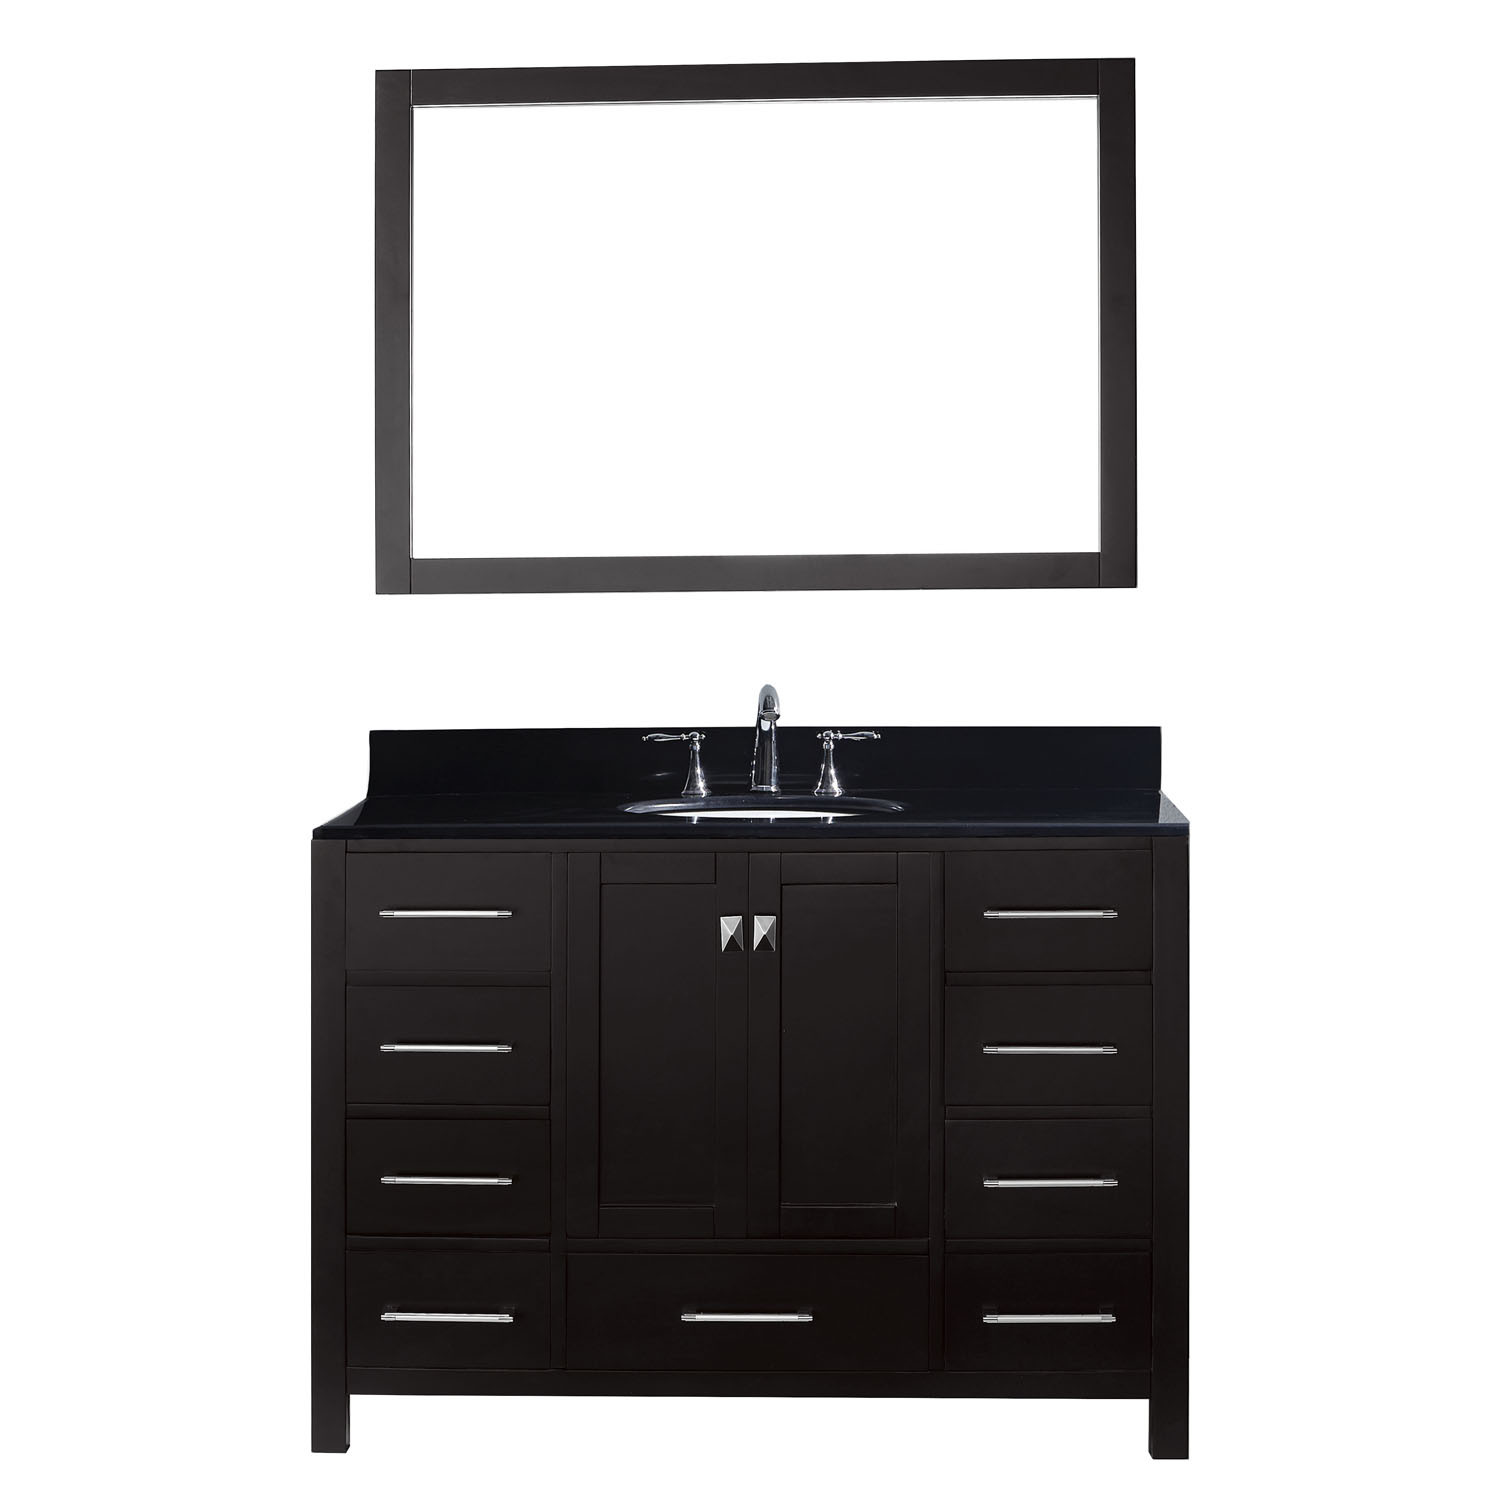 Virtu GS-50048-BGRO-ES-001 Caroline Avenue 48 Inch Single Bathroom Vanity Set In Espresso